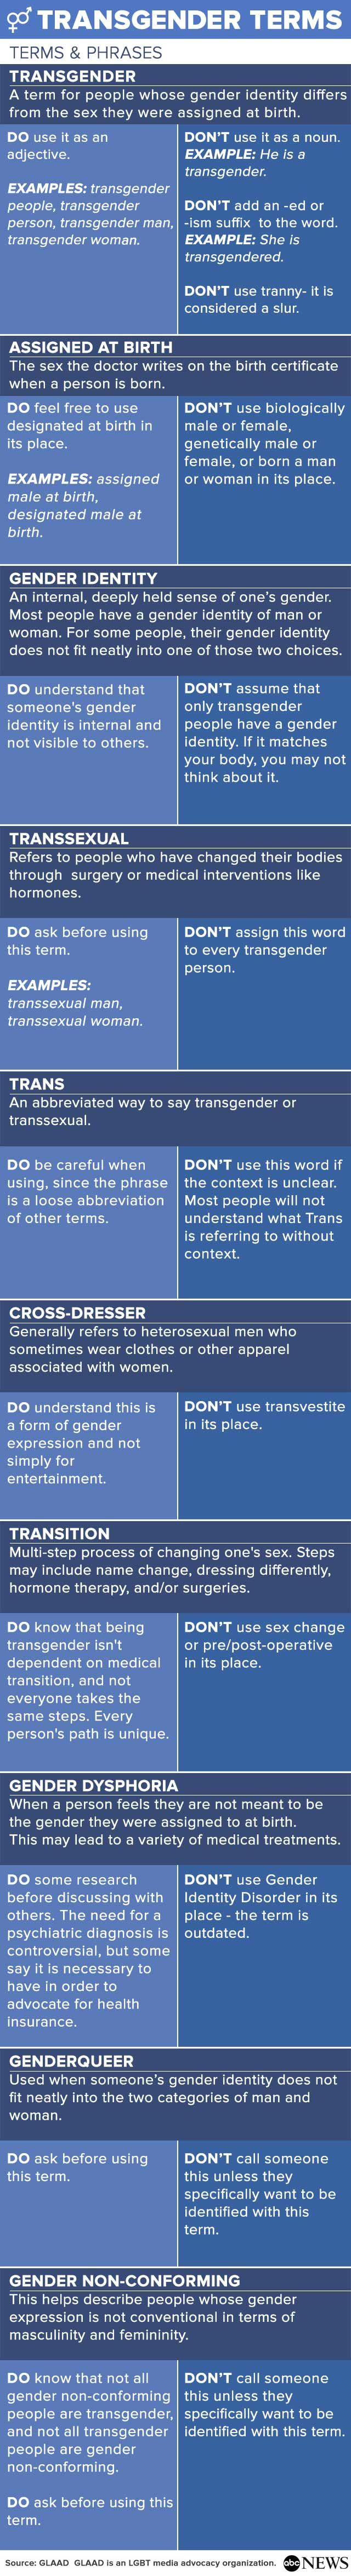 "Excellent chart. I have made the mistake of using ""biological male/female"" in a report. As a clinician I am constantly learning and correcting myself. Sometimes clients themselves will use outdated or negative phrases when referring to gender identity and expression, so following their lead or adopting their language may not always be the most clinically appropriate approach."